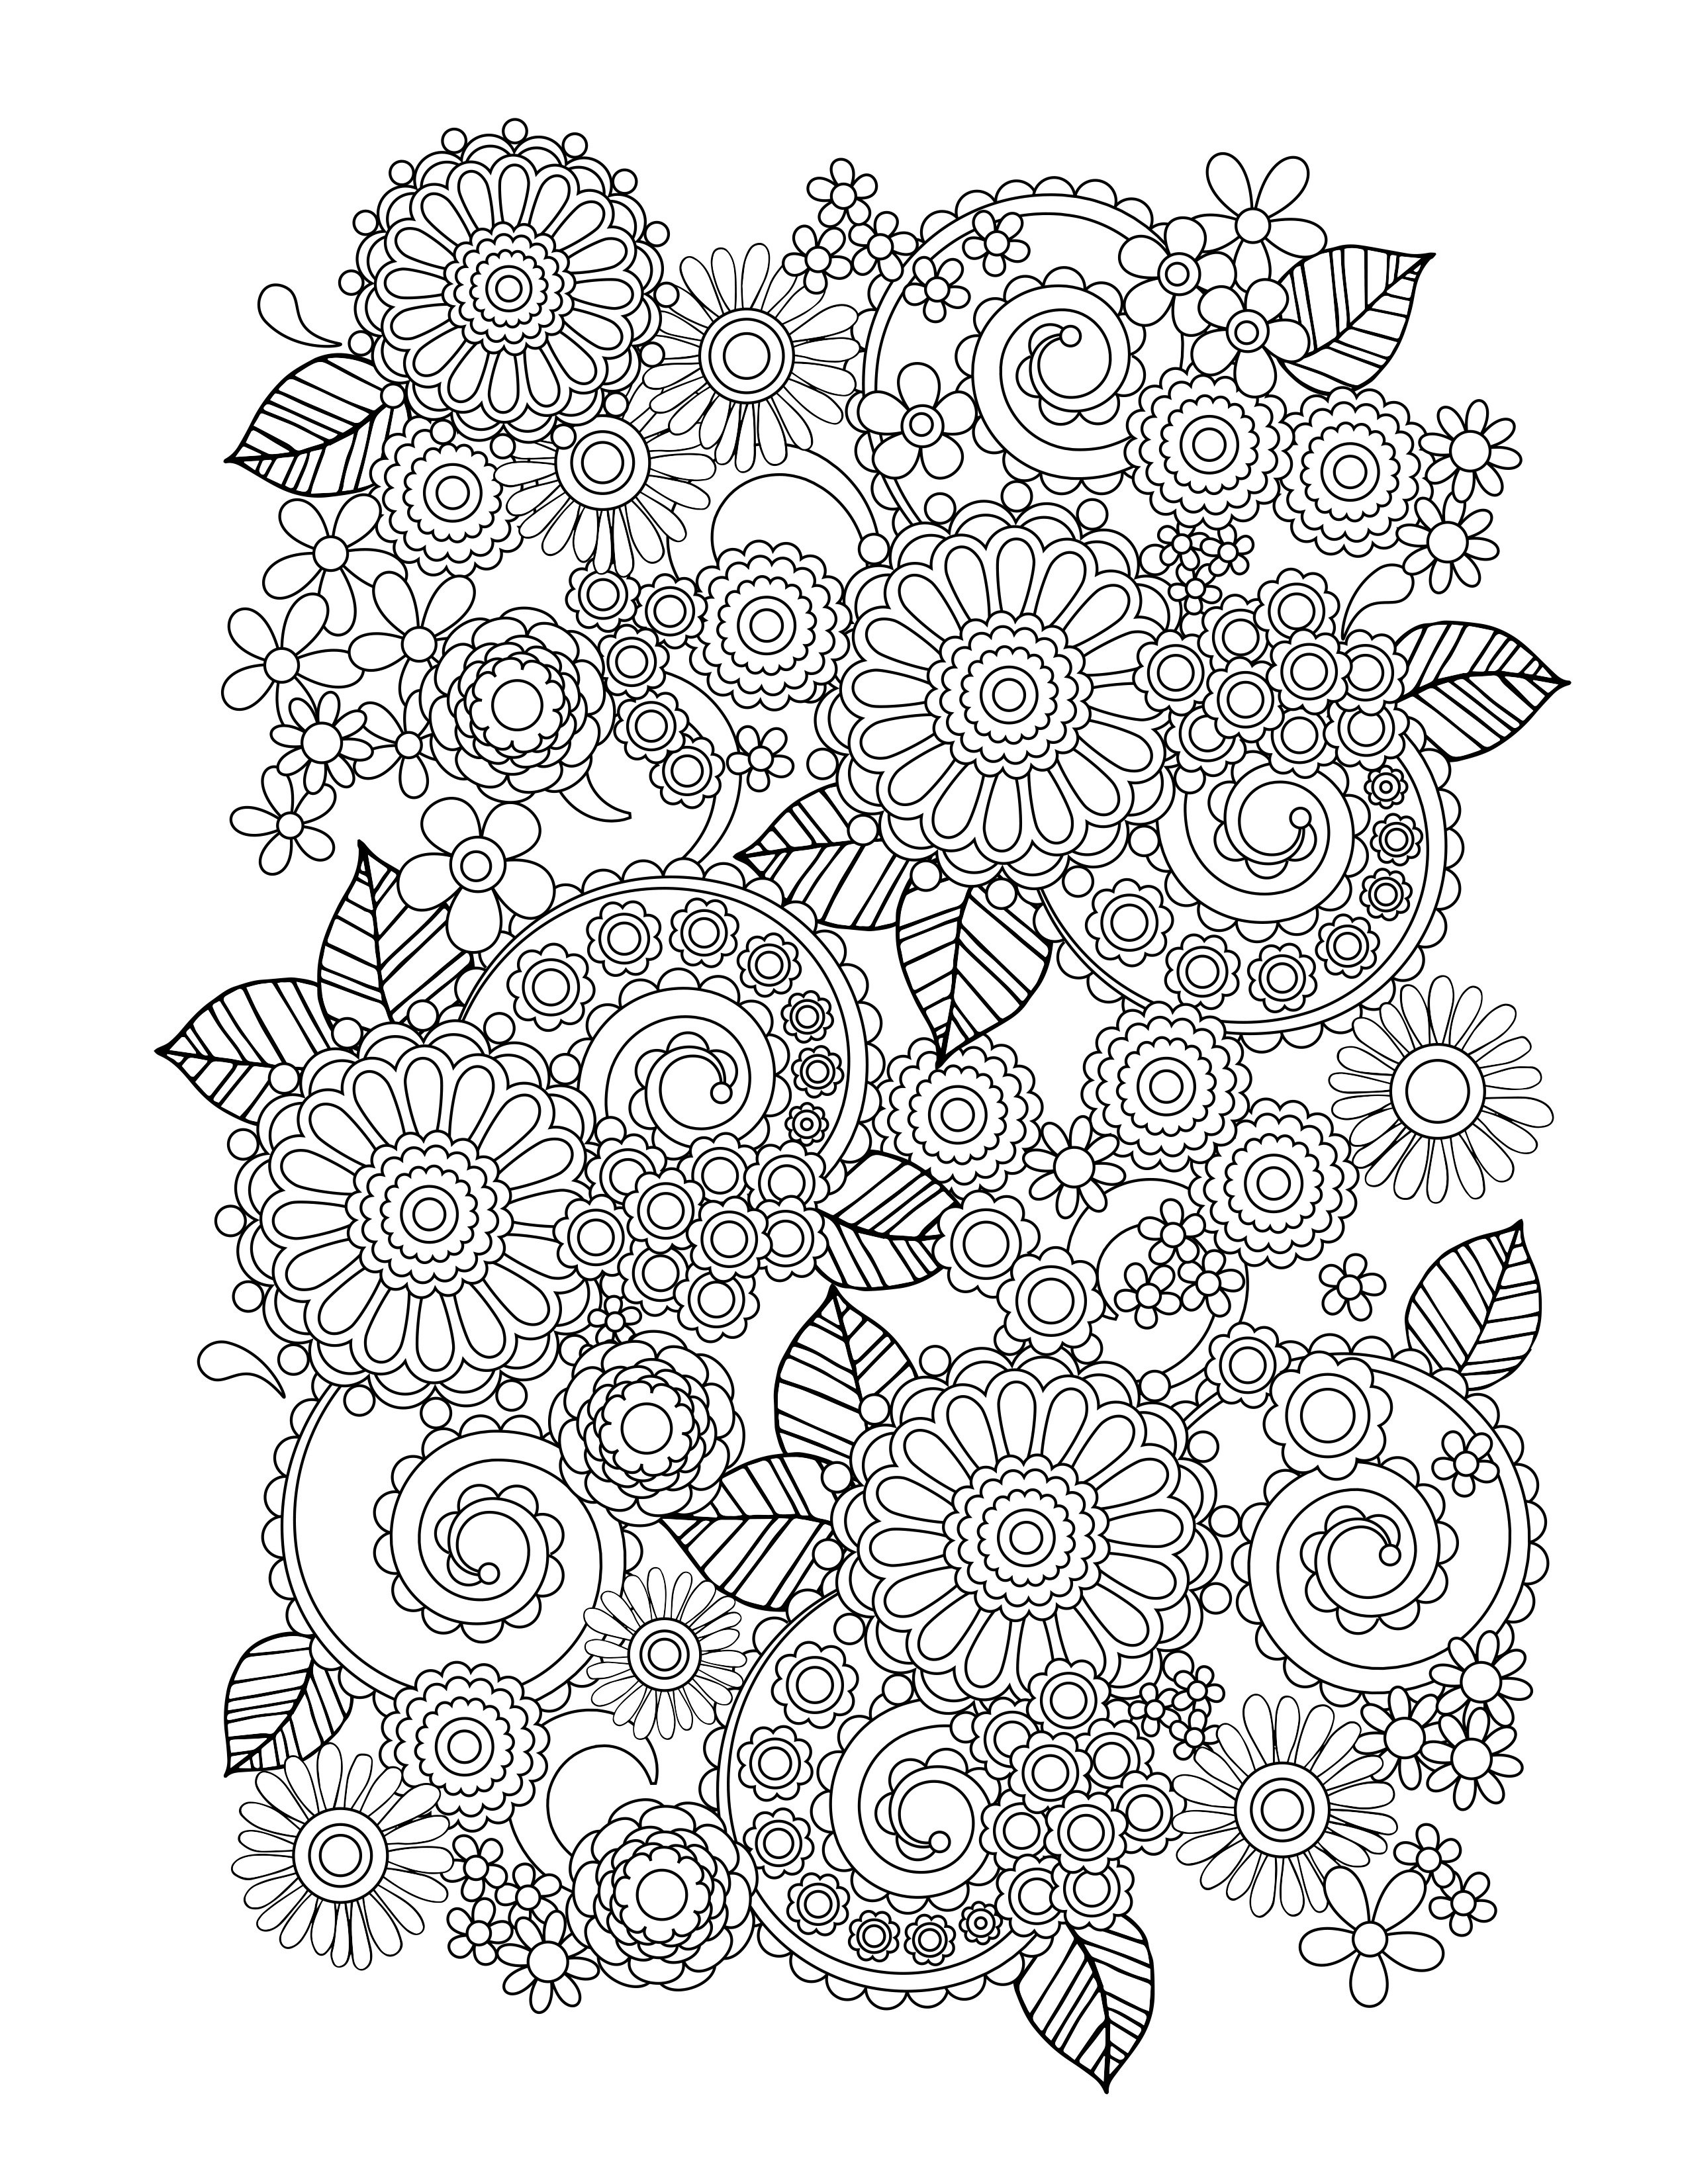 adult coloring pages flowers six dahlia flower flowers adult coloring pages flowers pages coloring adult